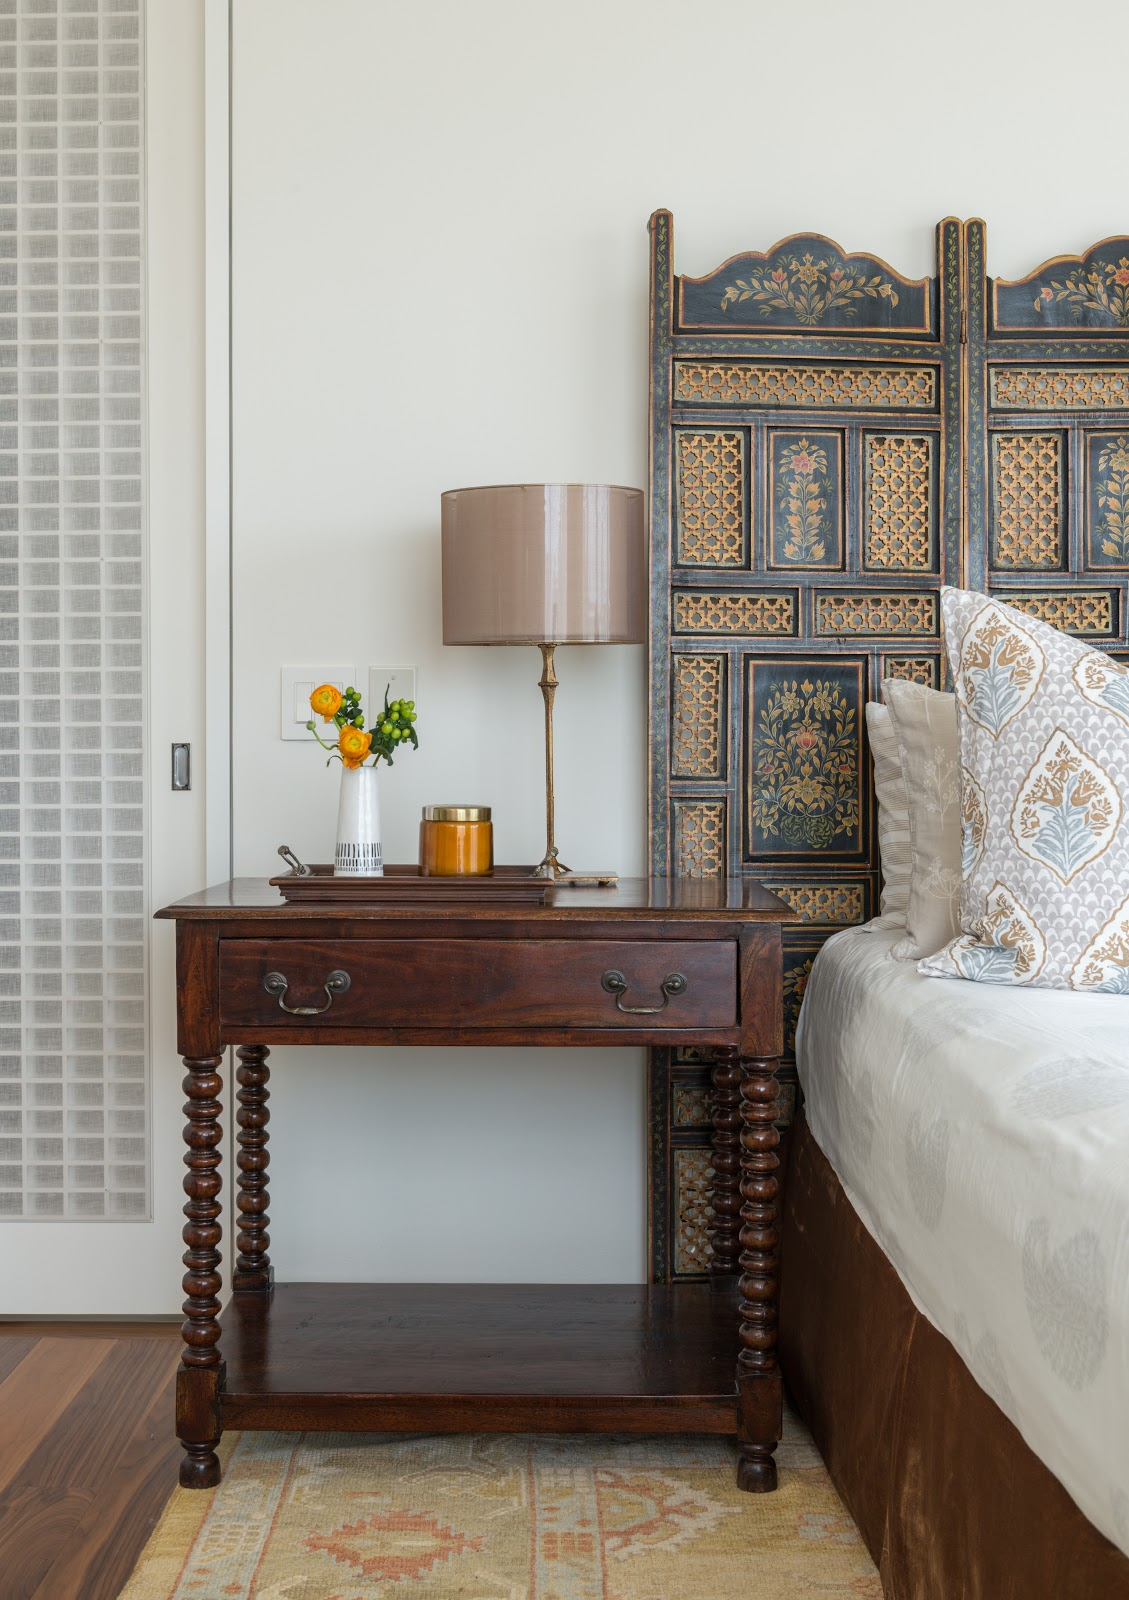 Ornate antique headboard with traditional spindle leg side table in guest bedroom - Dbh-biz.info Interior Design